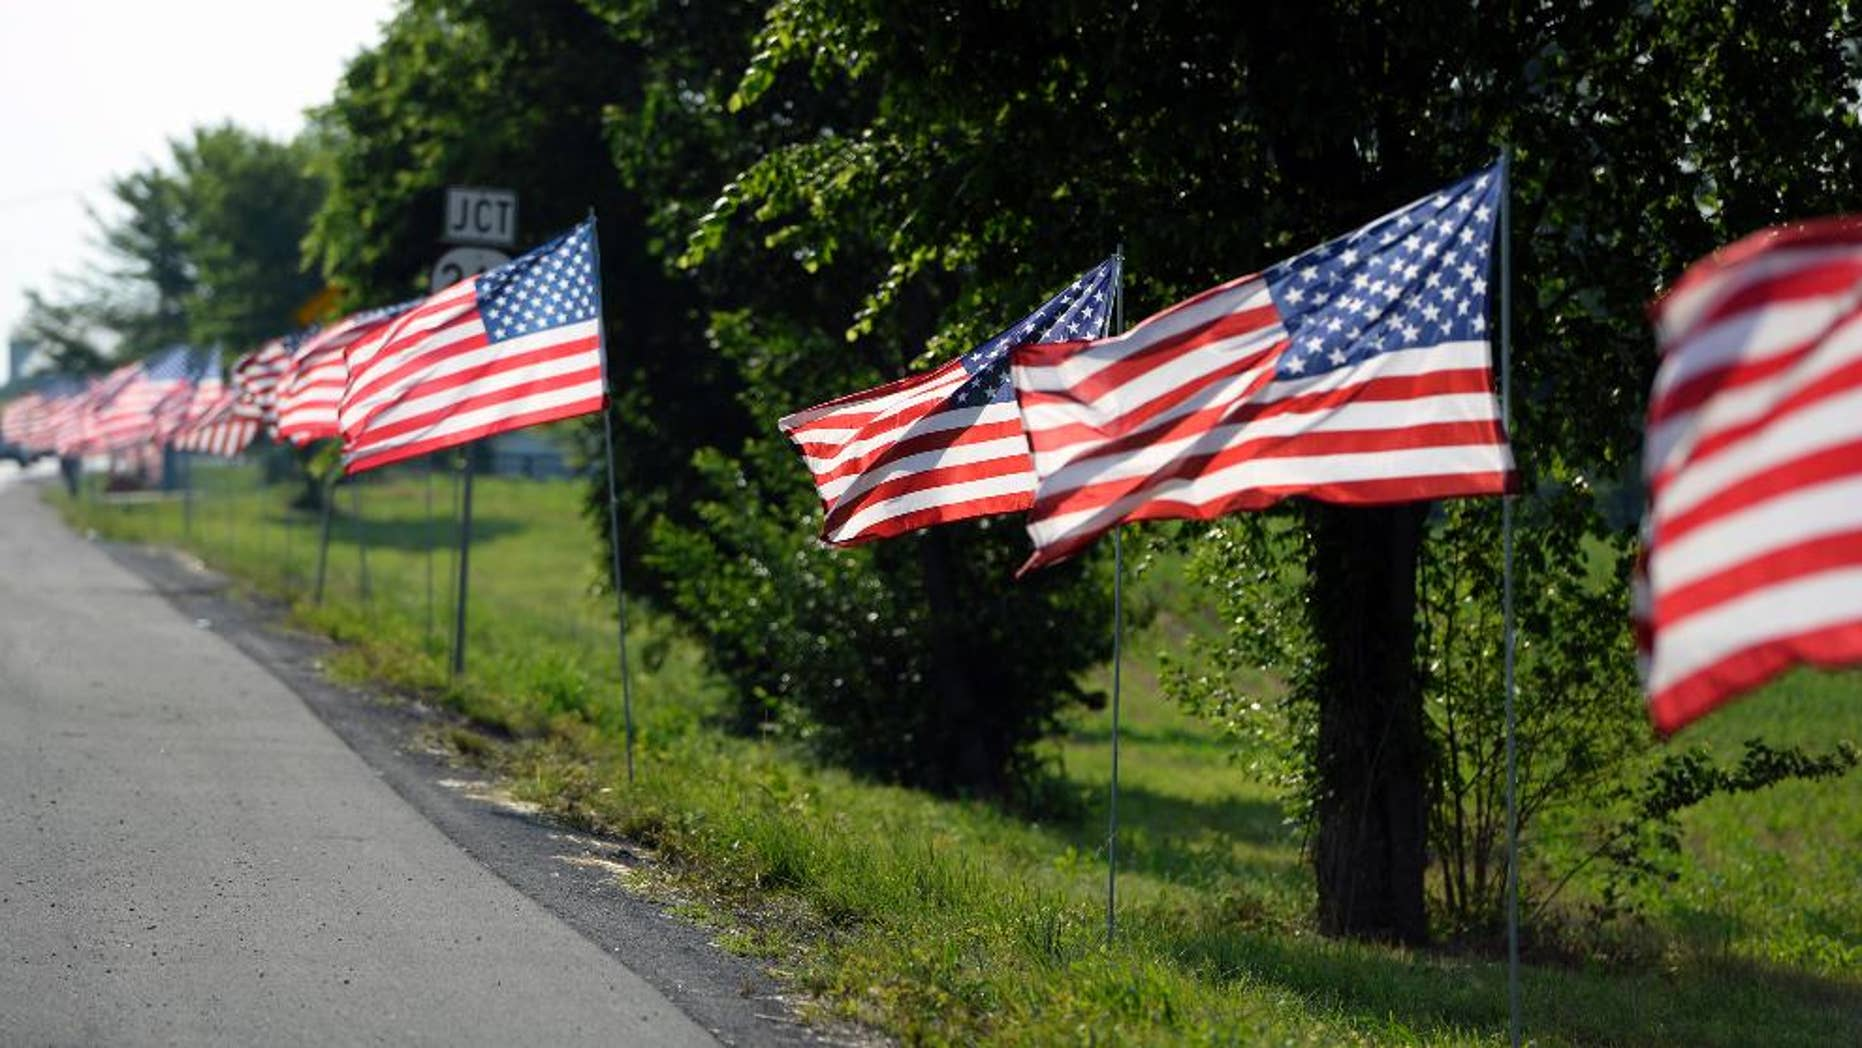 FILE - In this Thursday, May 30, 2013, photo, United States flags line the route of the funeral procession of Bardstown, Ky. Officer Jason Ellis during his funeral service   The shocking murder of the ex-minor league baseball player and father of two young boys still haunts Ellis' colleagues and the town of about 12,000 in Kentucky's bourbon country. In the ensuing months, tips poured in, police dangled about $200,000 in reward money and billboards publicized the case. (AP Photo/Timothy D. Easley, File)